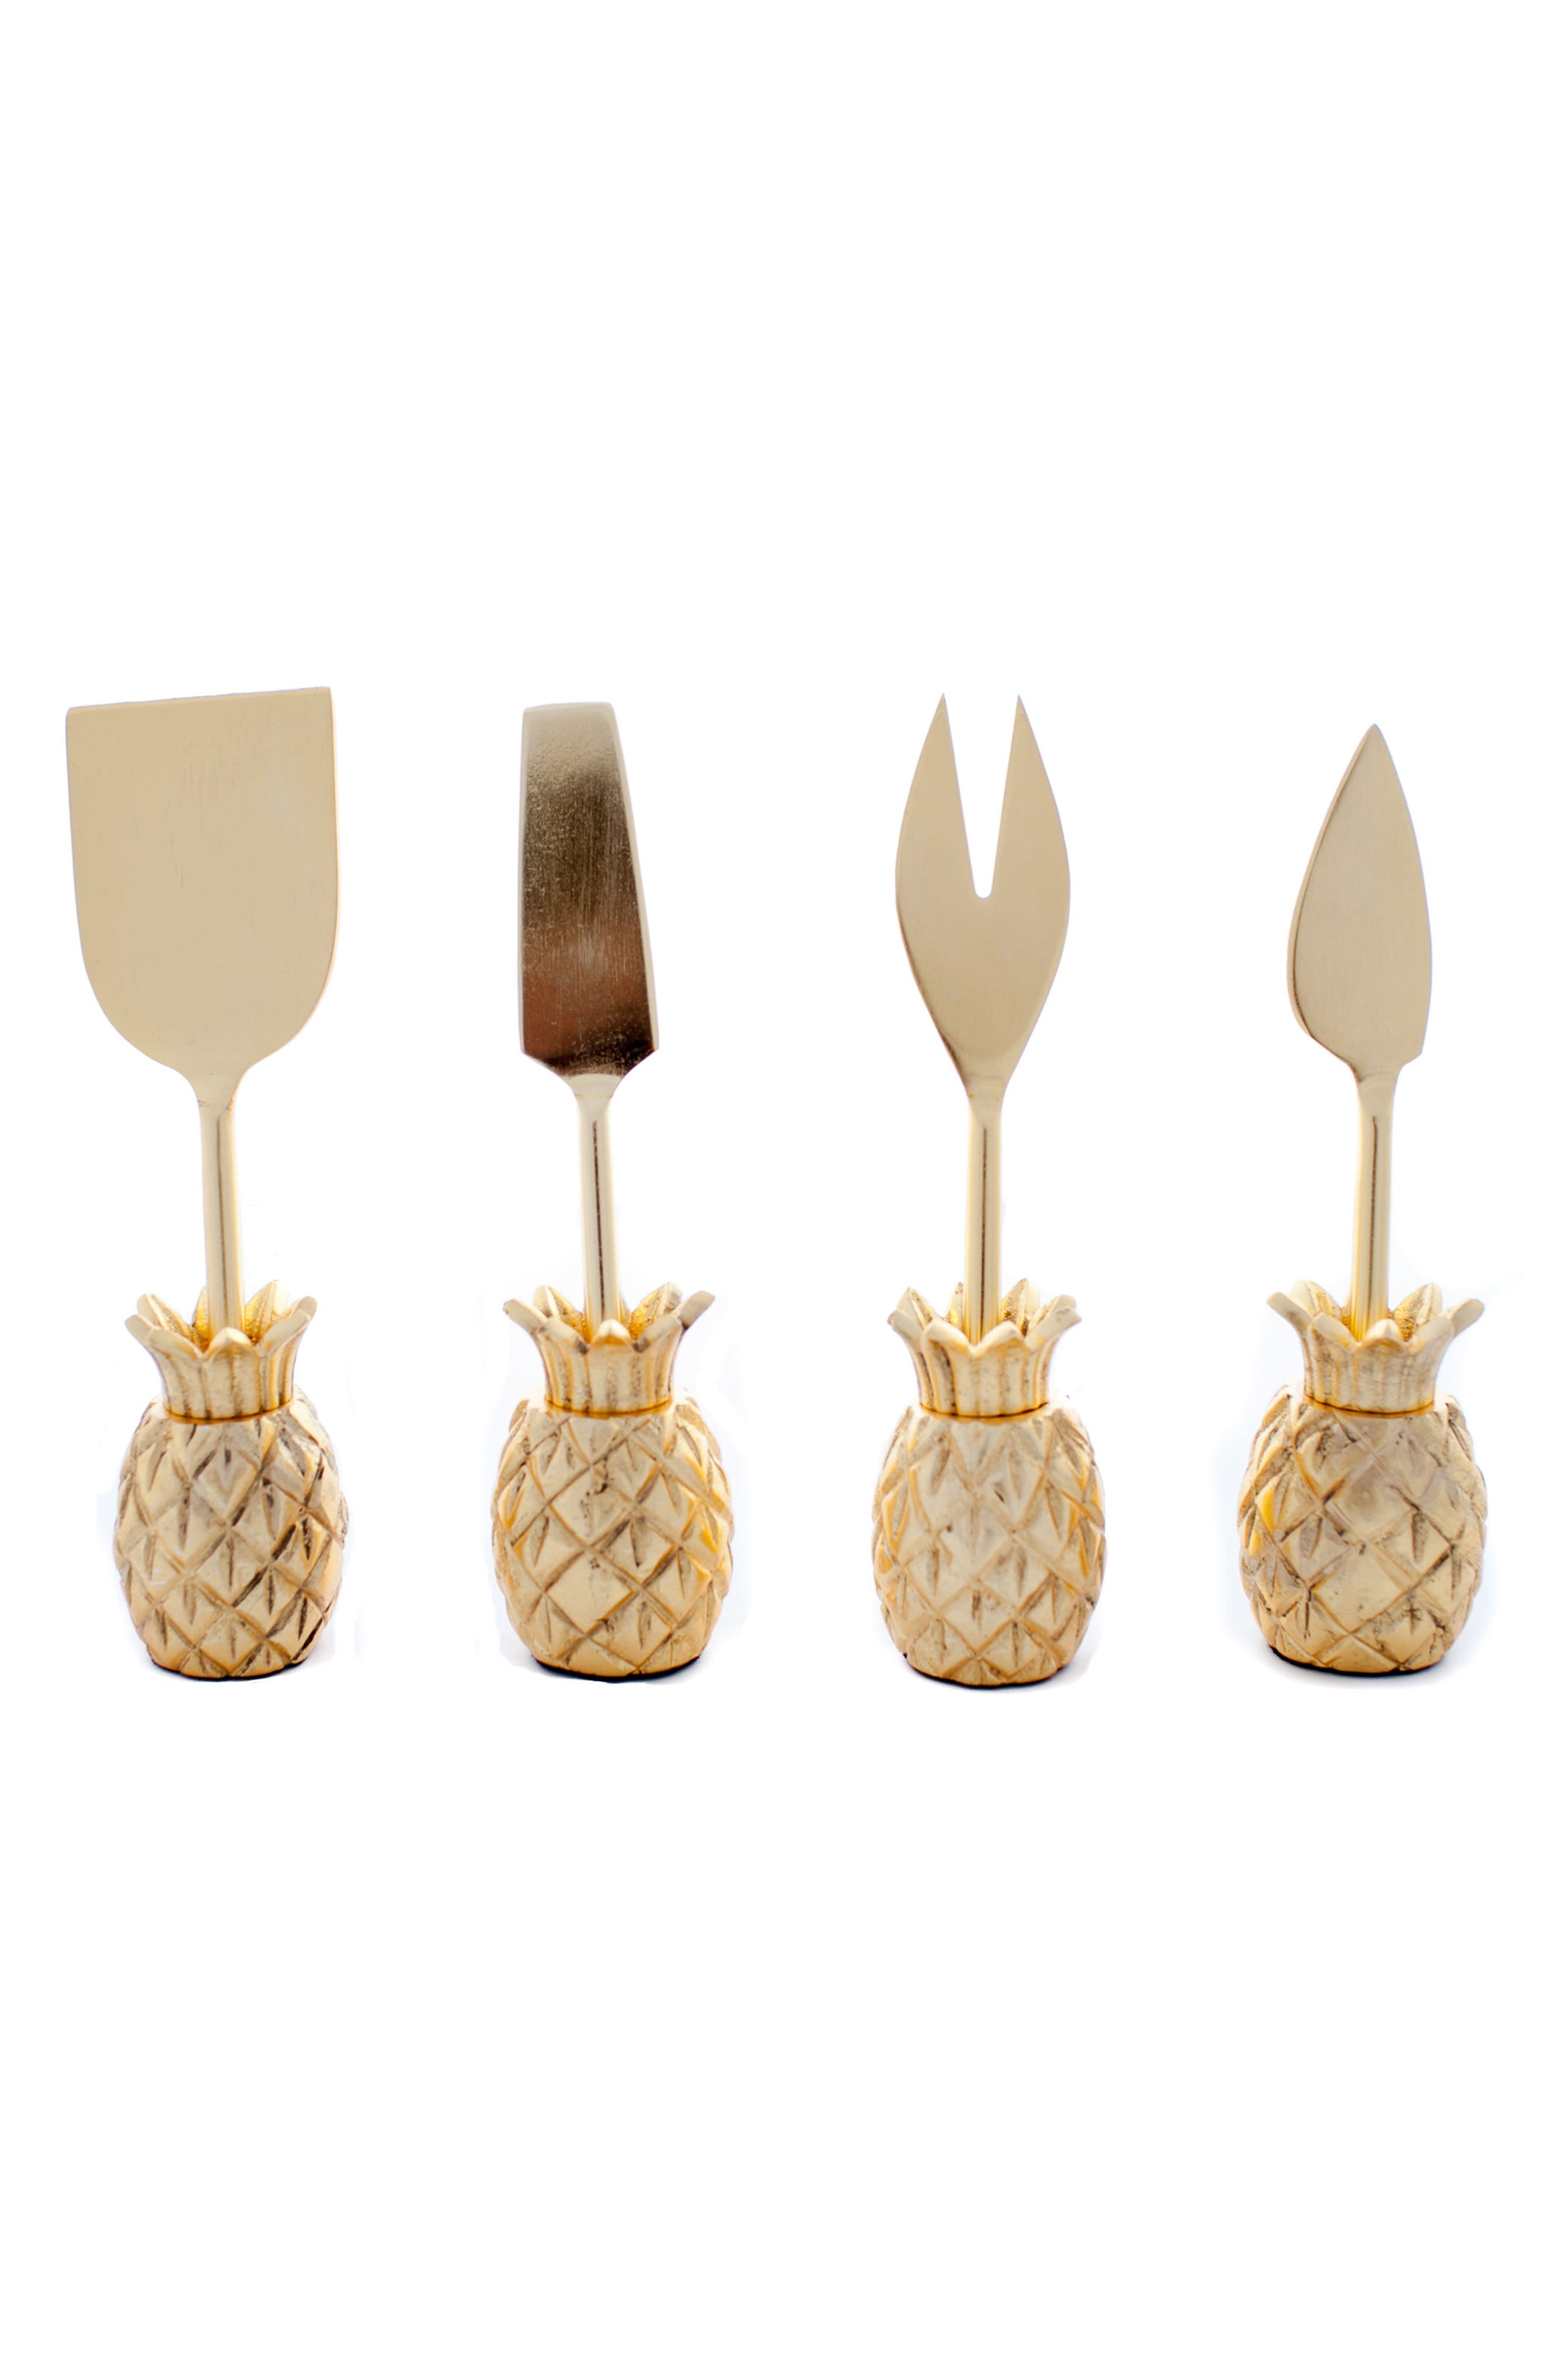 Luau Set of 4 Cheese Knives,                             Main thumbnail 1, color,